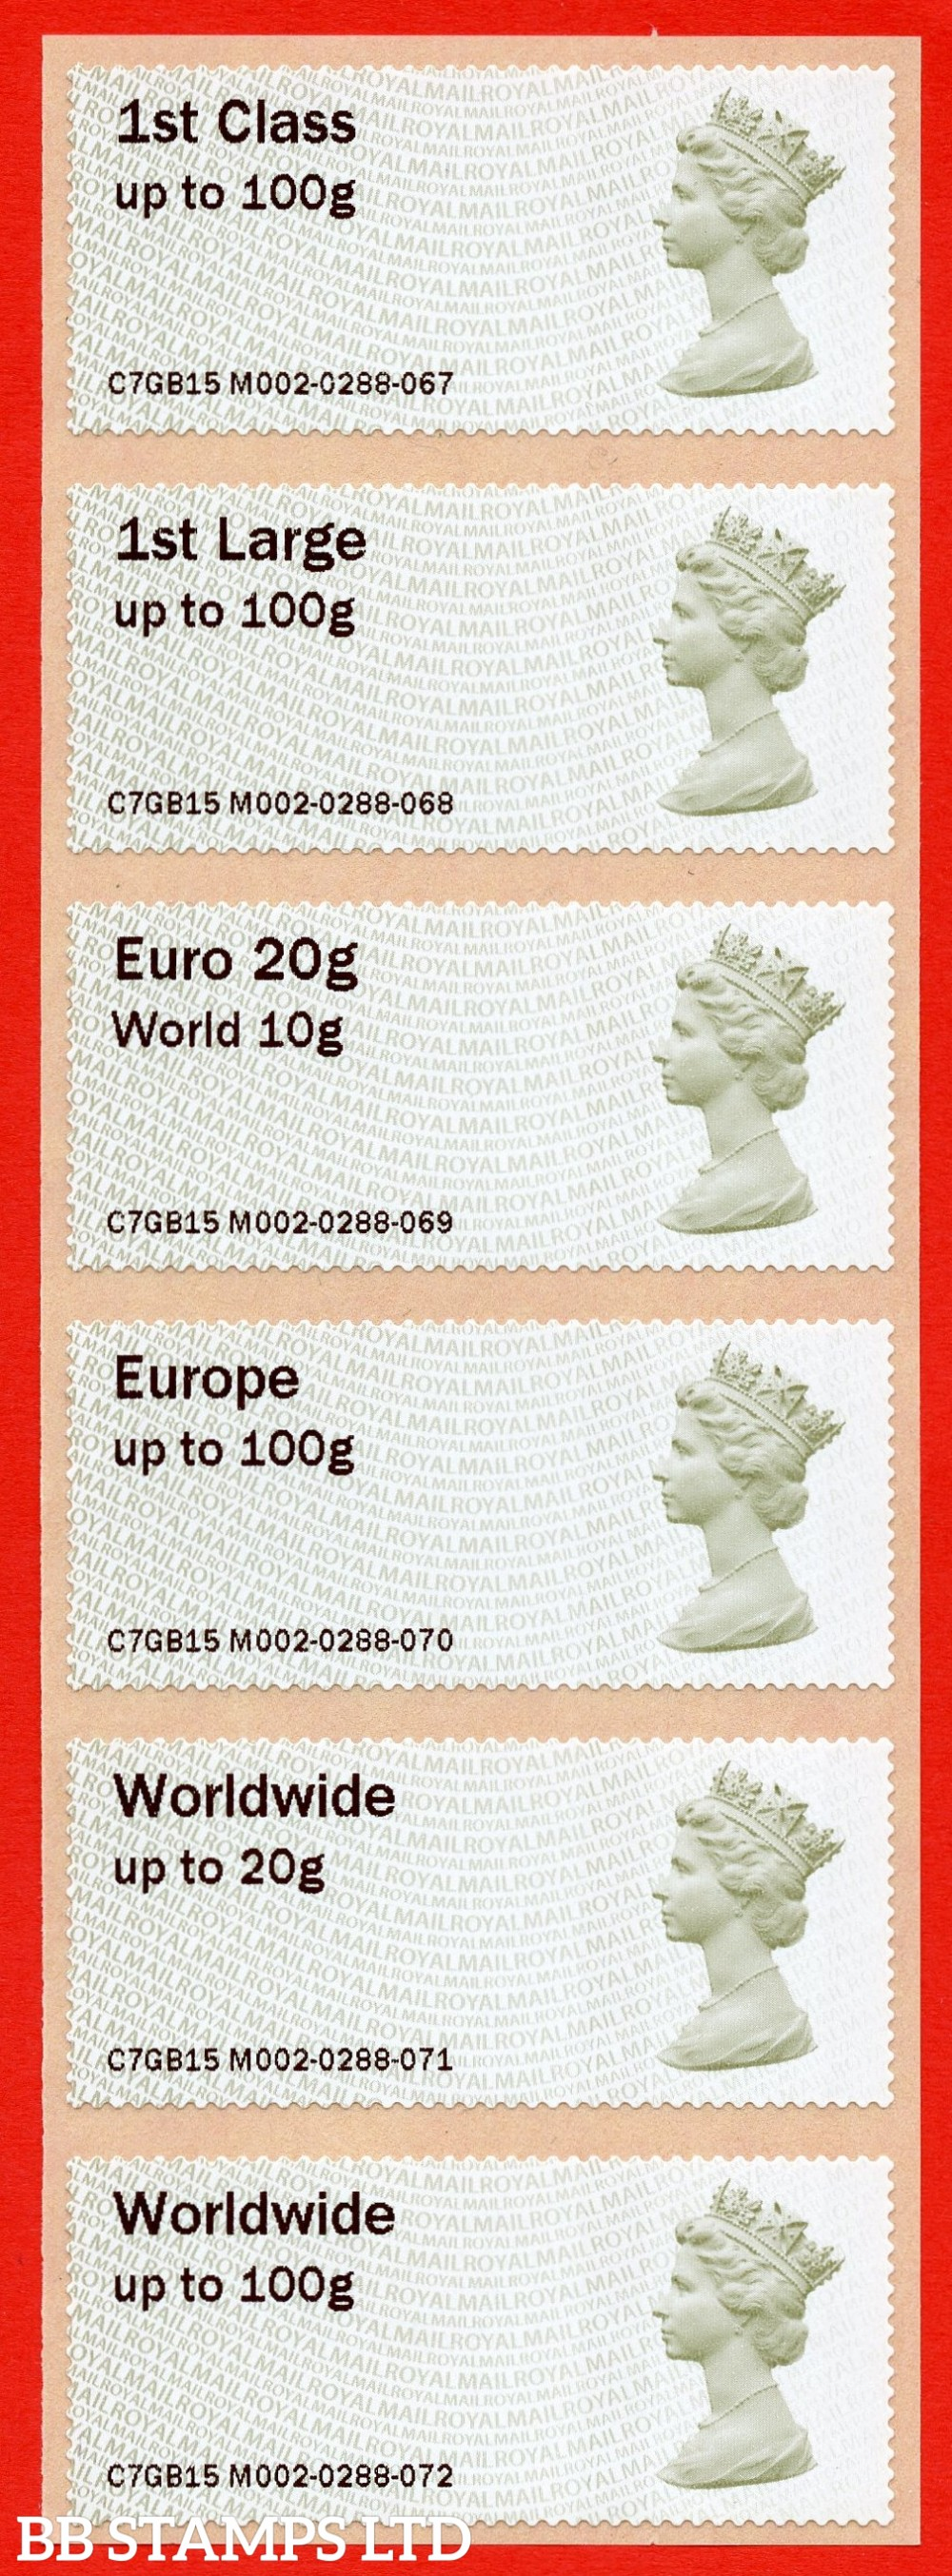 1st - Worldwide 100g with dual value (set of 6) Type IIIA NO DATE (BK1,P10)